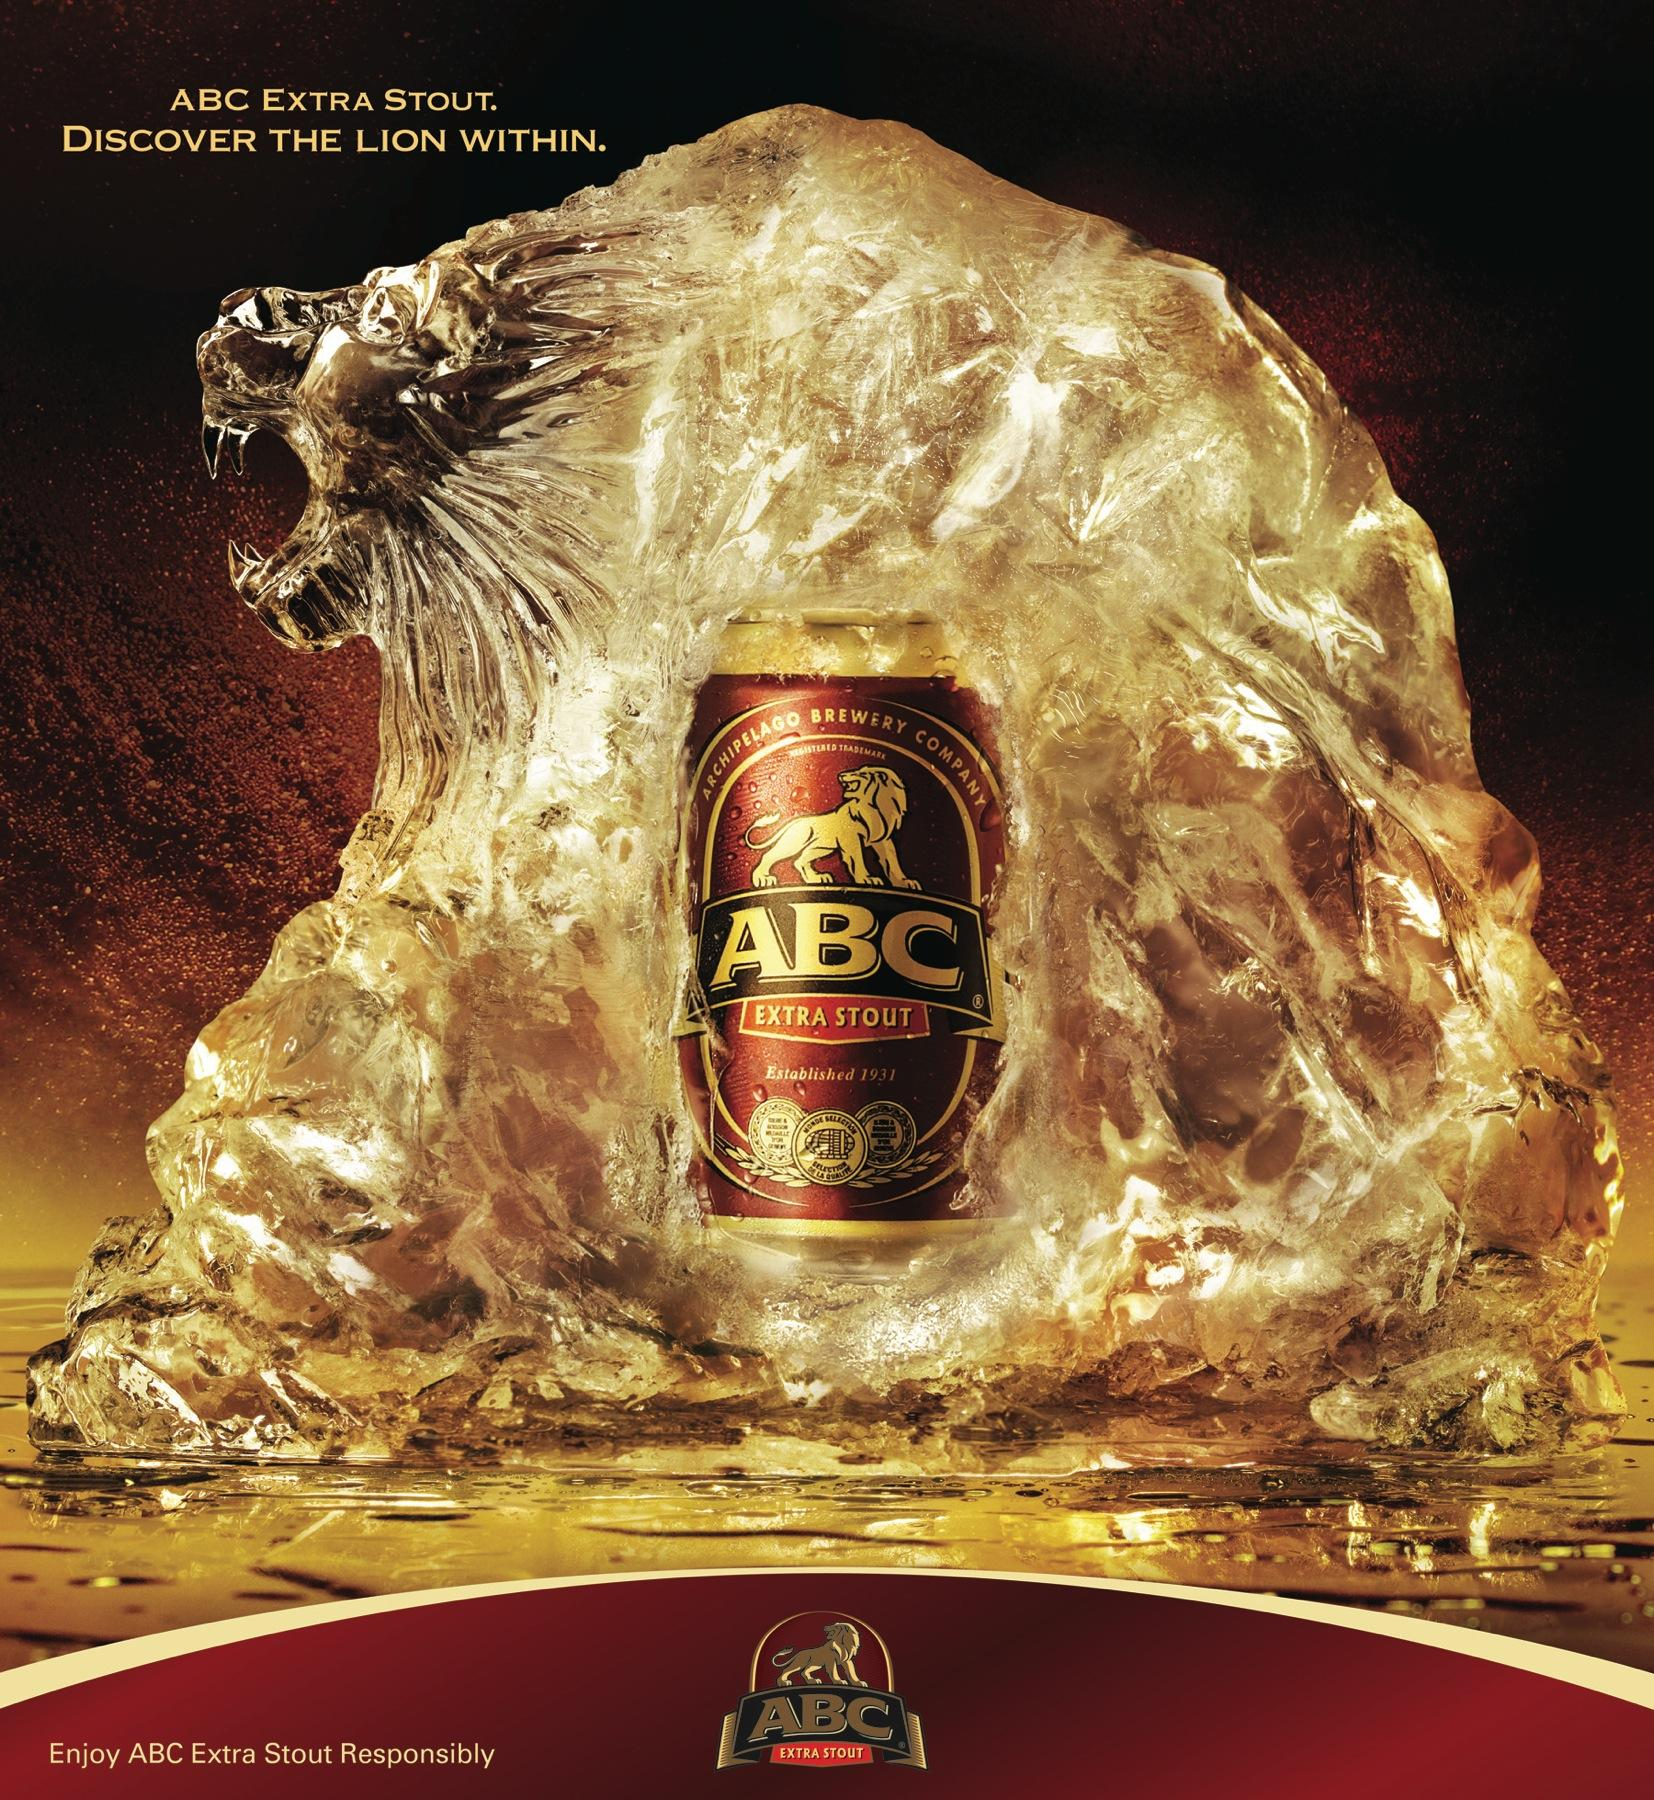 ABC Extra Stout Print Ad -  Discover